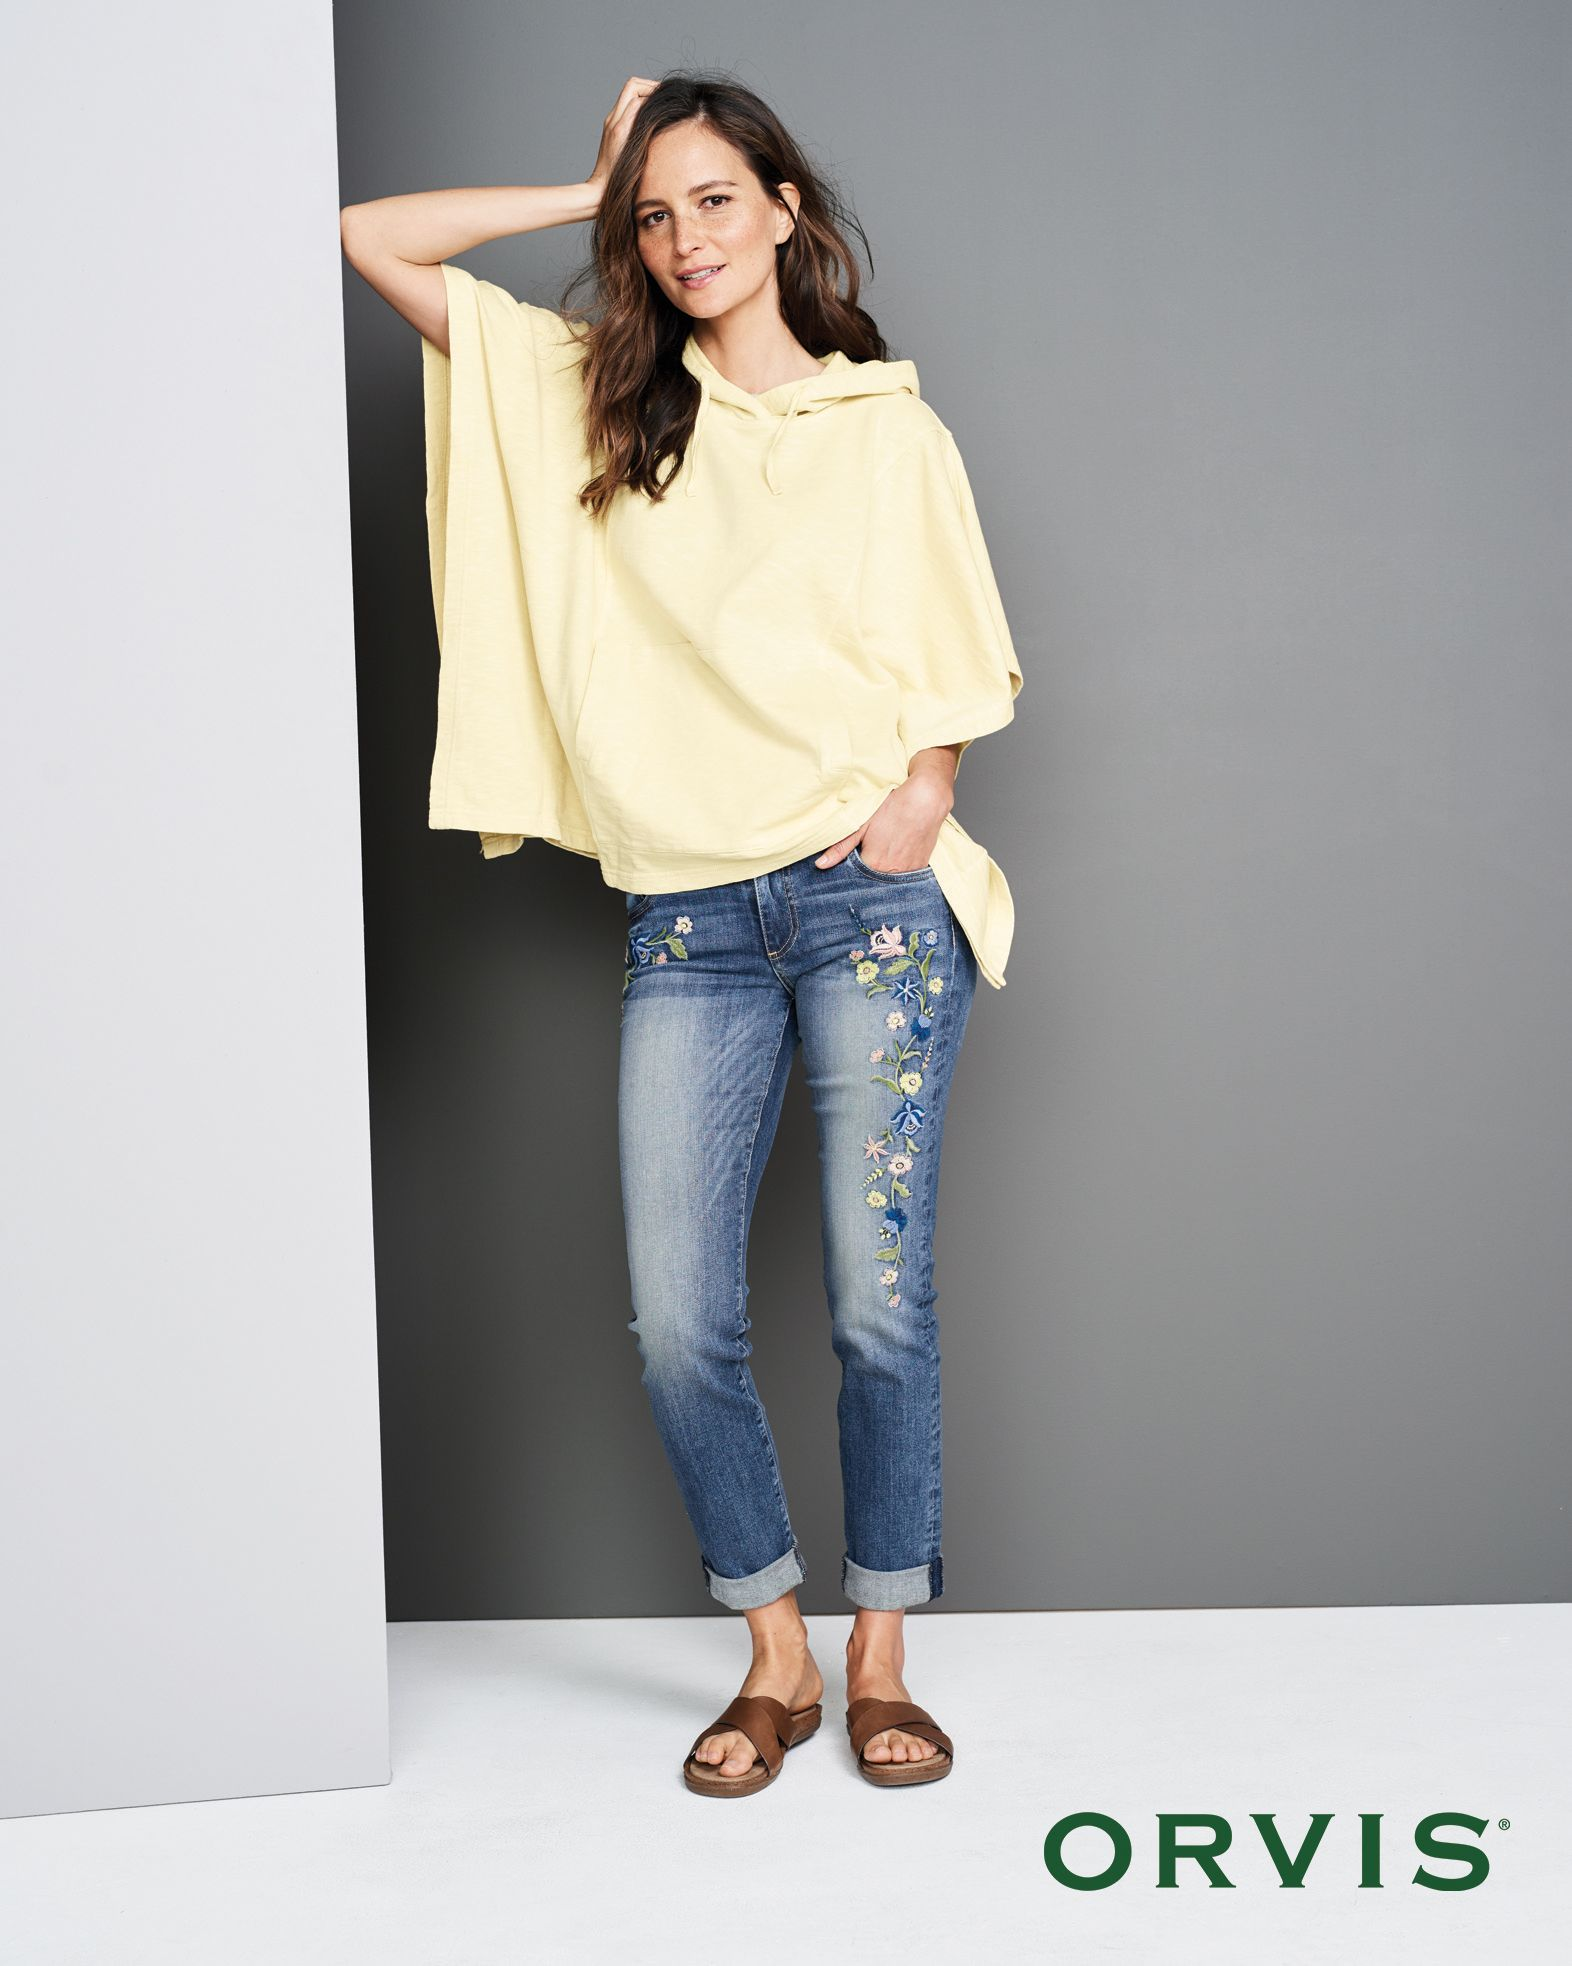 fbcbed1523 Sunwashed Poncho Our comfortable Sunwashed Poncho Sweatshirt is as easy as  a relaxing day at the beach.